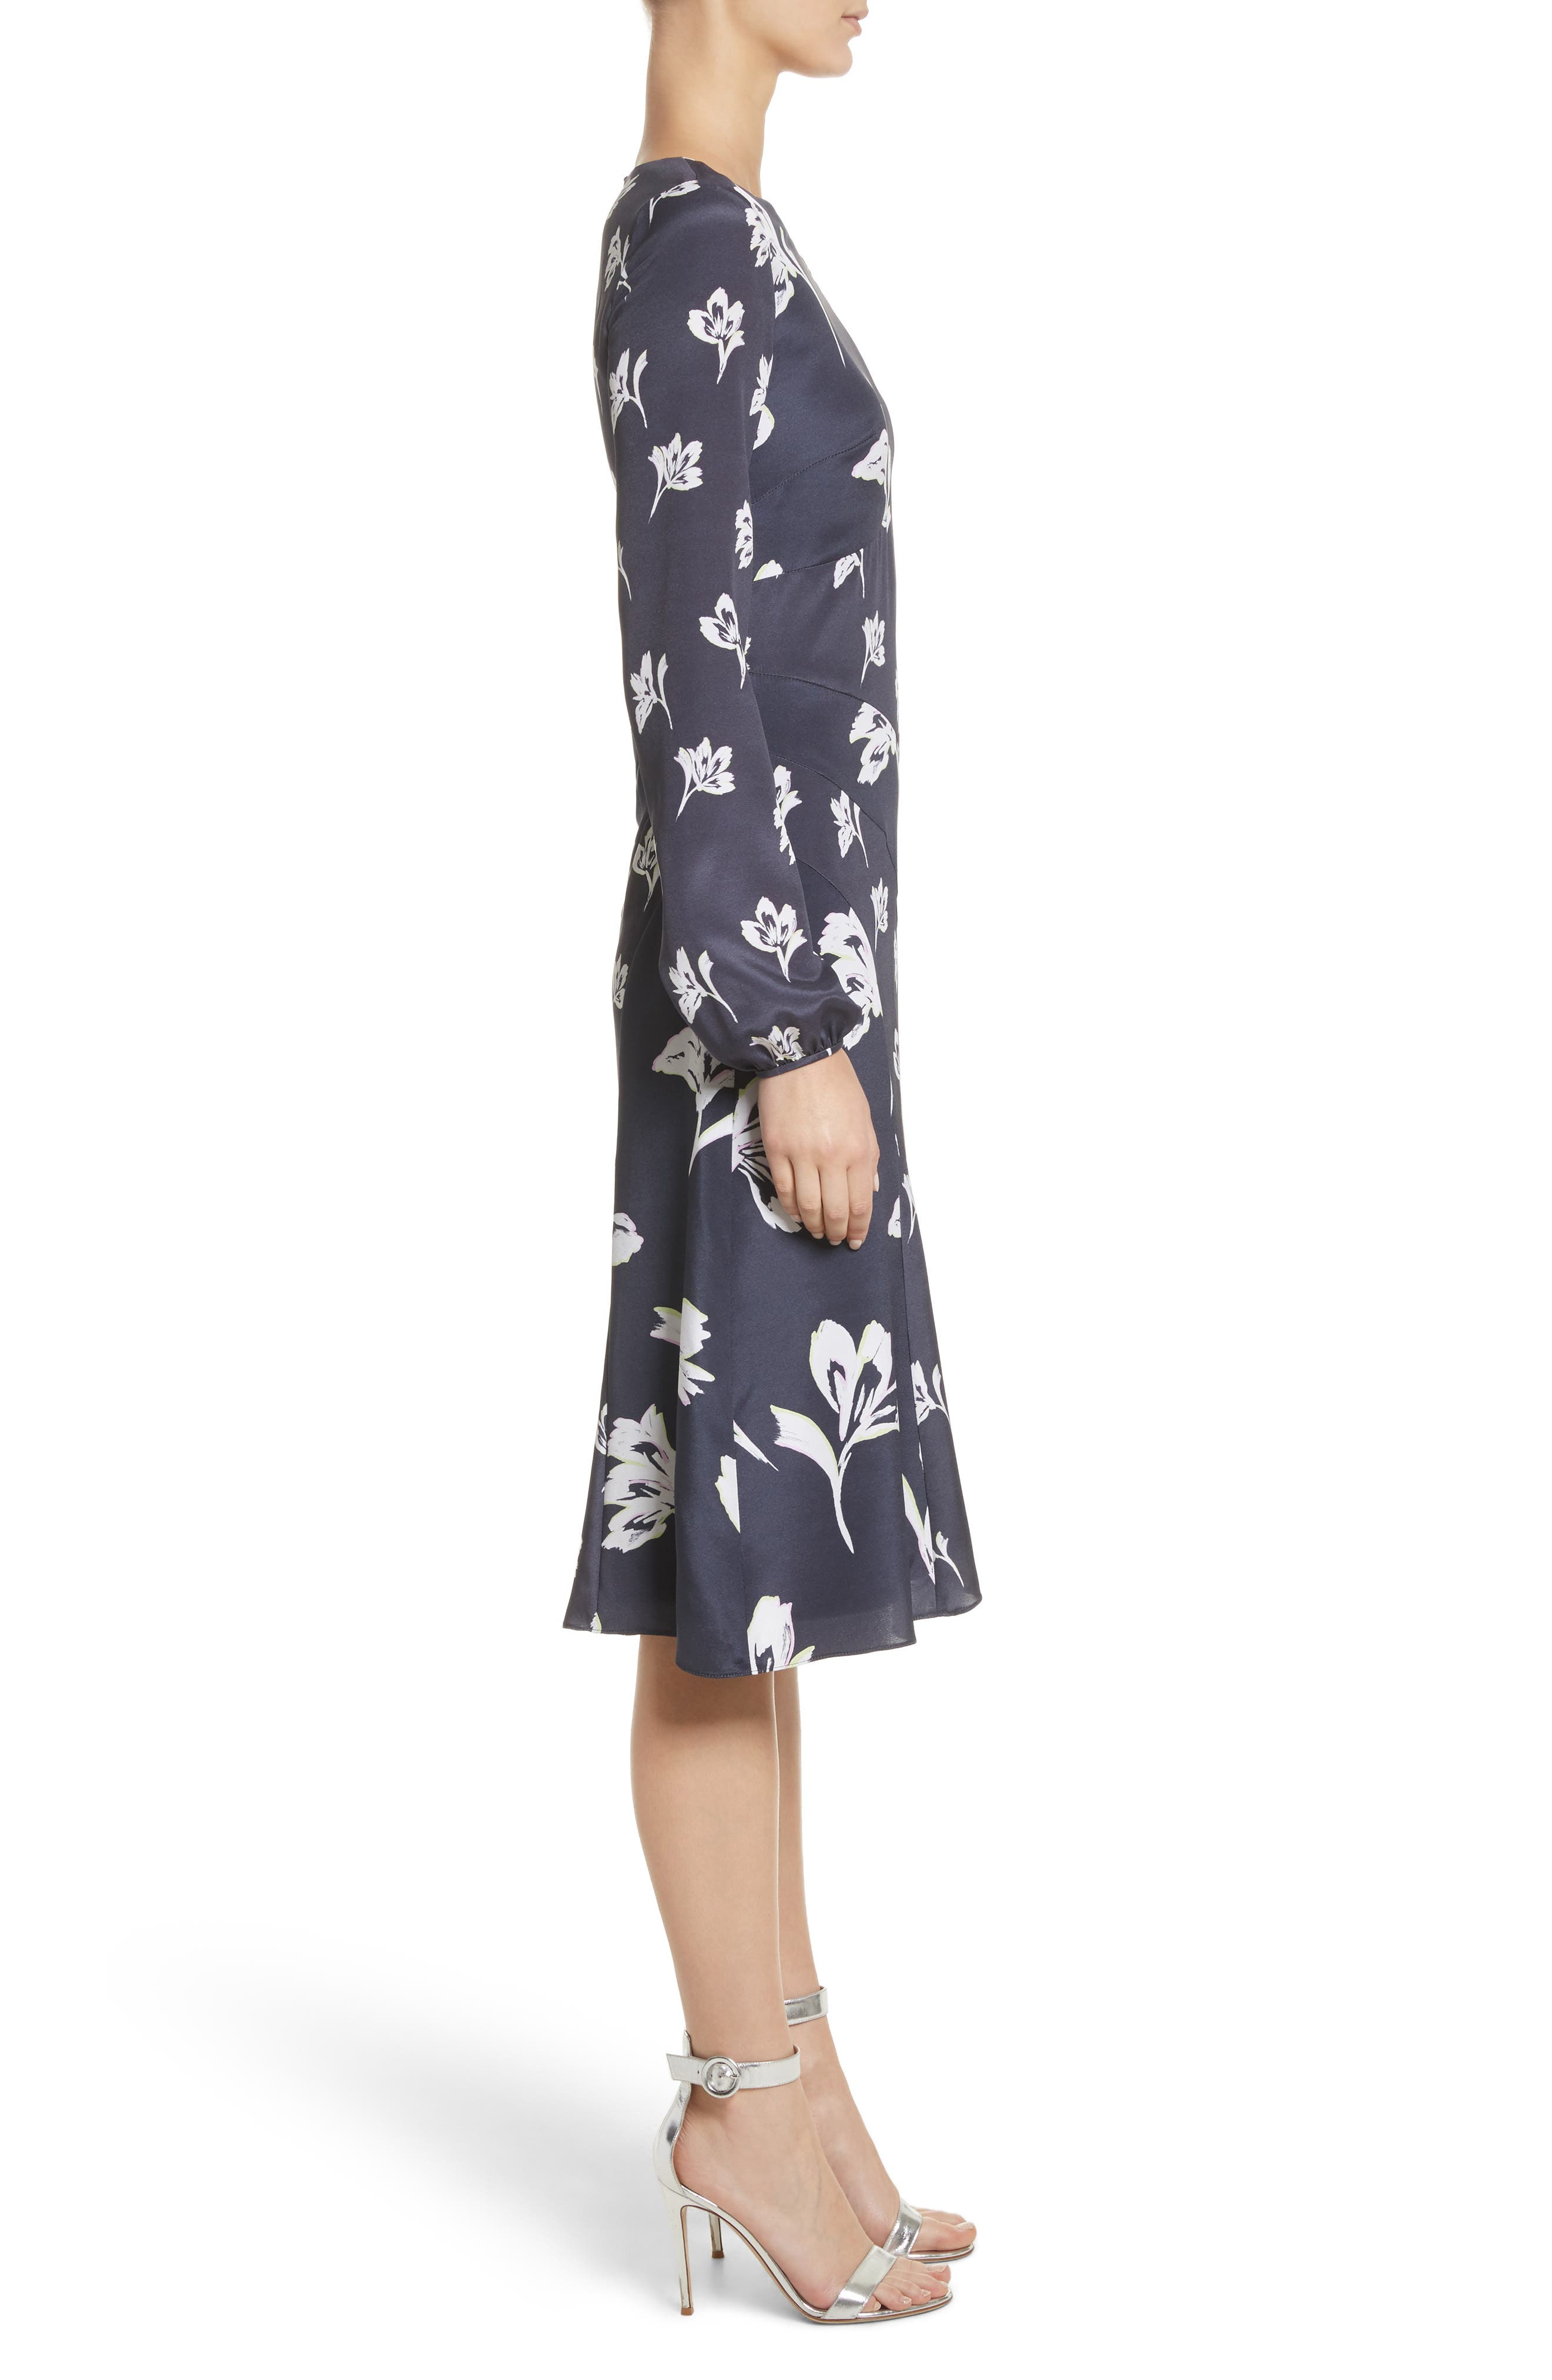 Falling Flower Print Stretch Silk Dress,                             Alternate thumbnail 3, color,